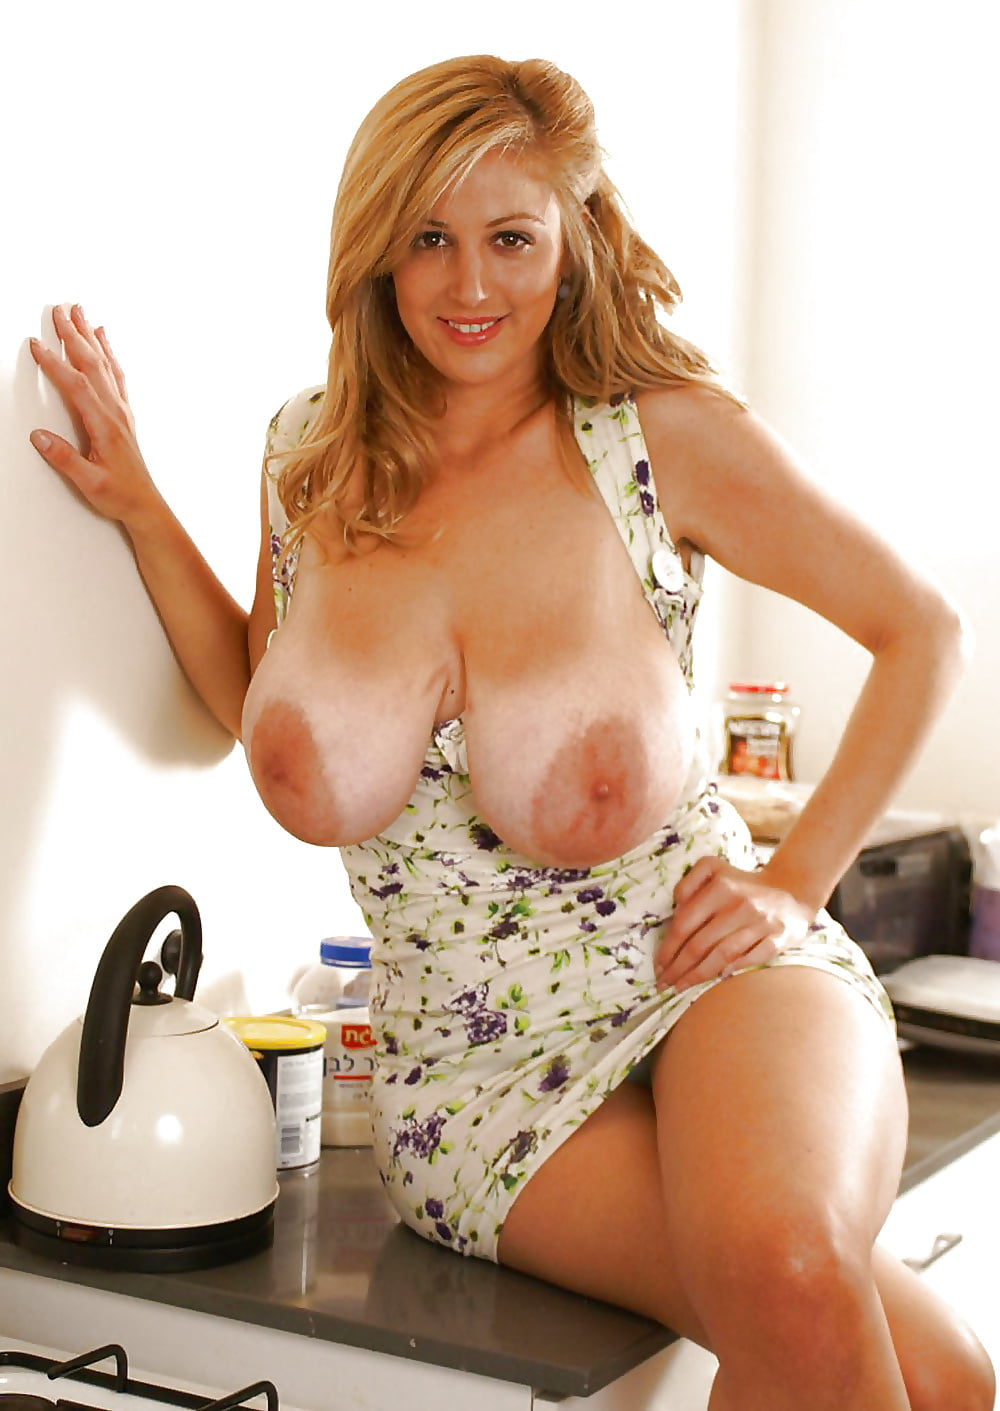 Chubby Housewife With Big Natural Tits